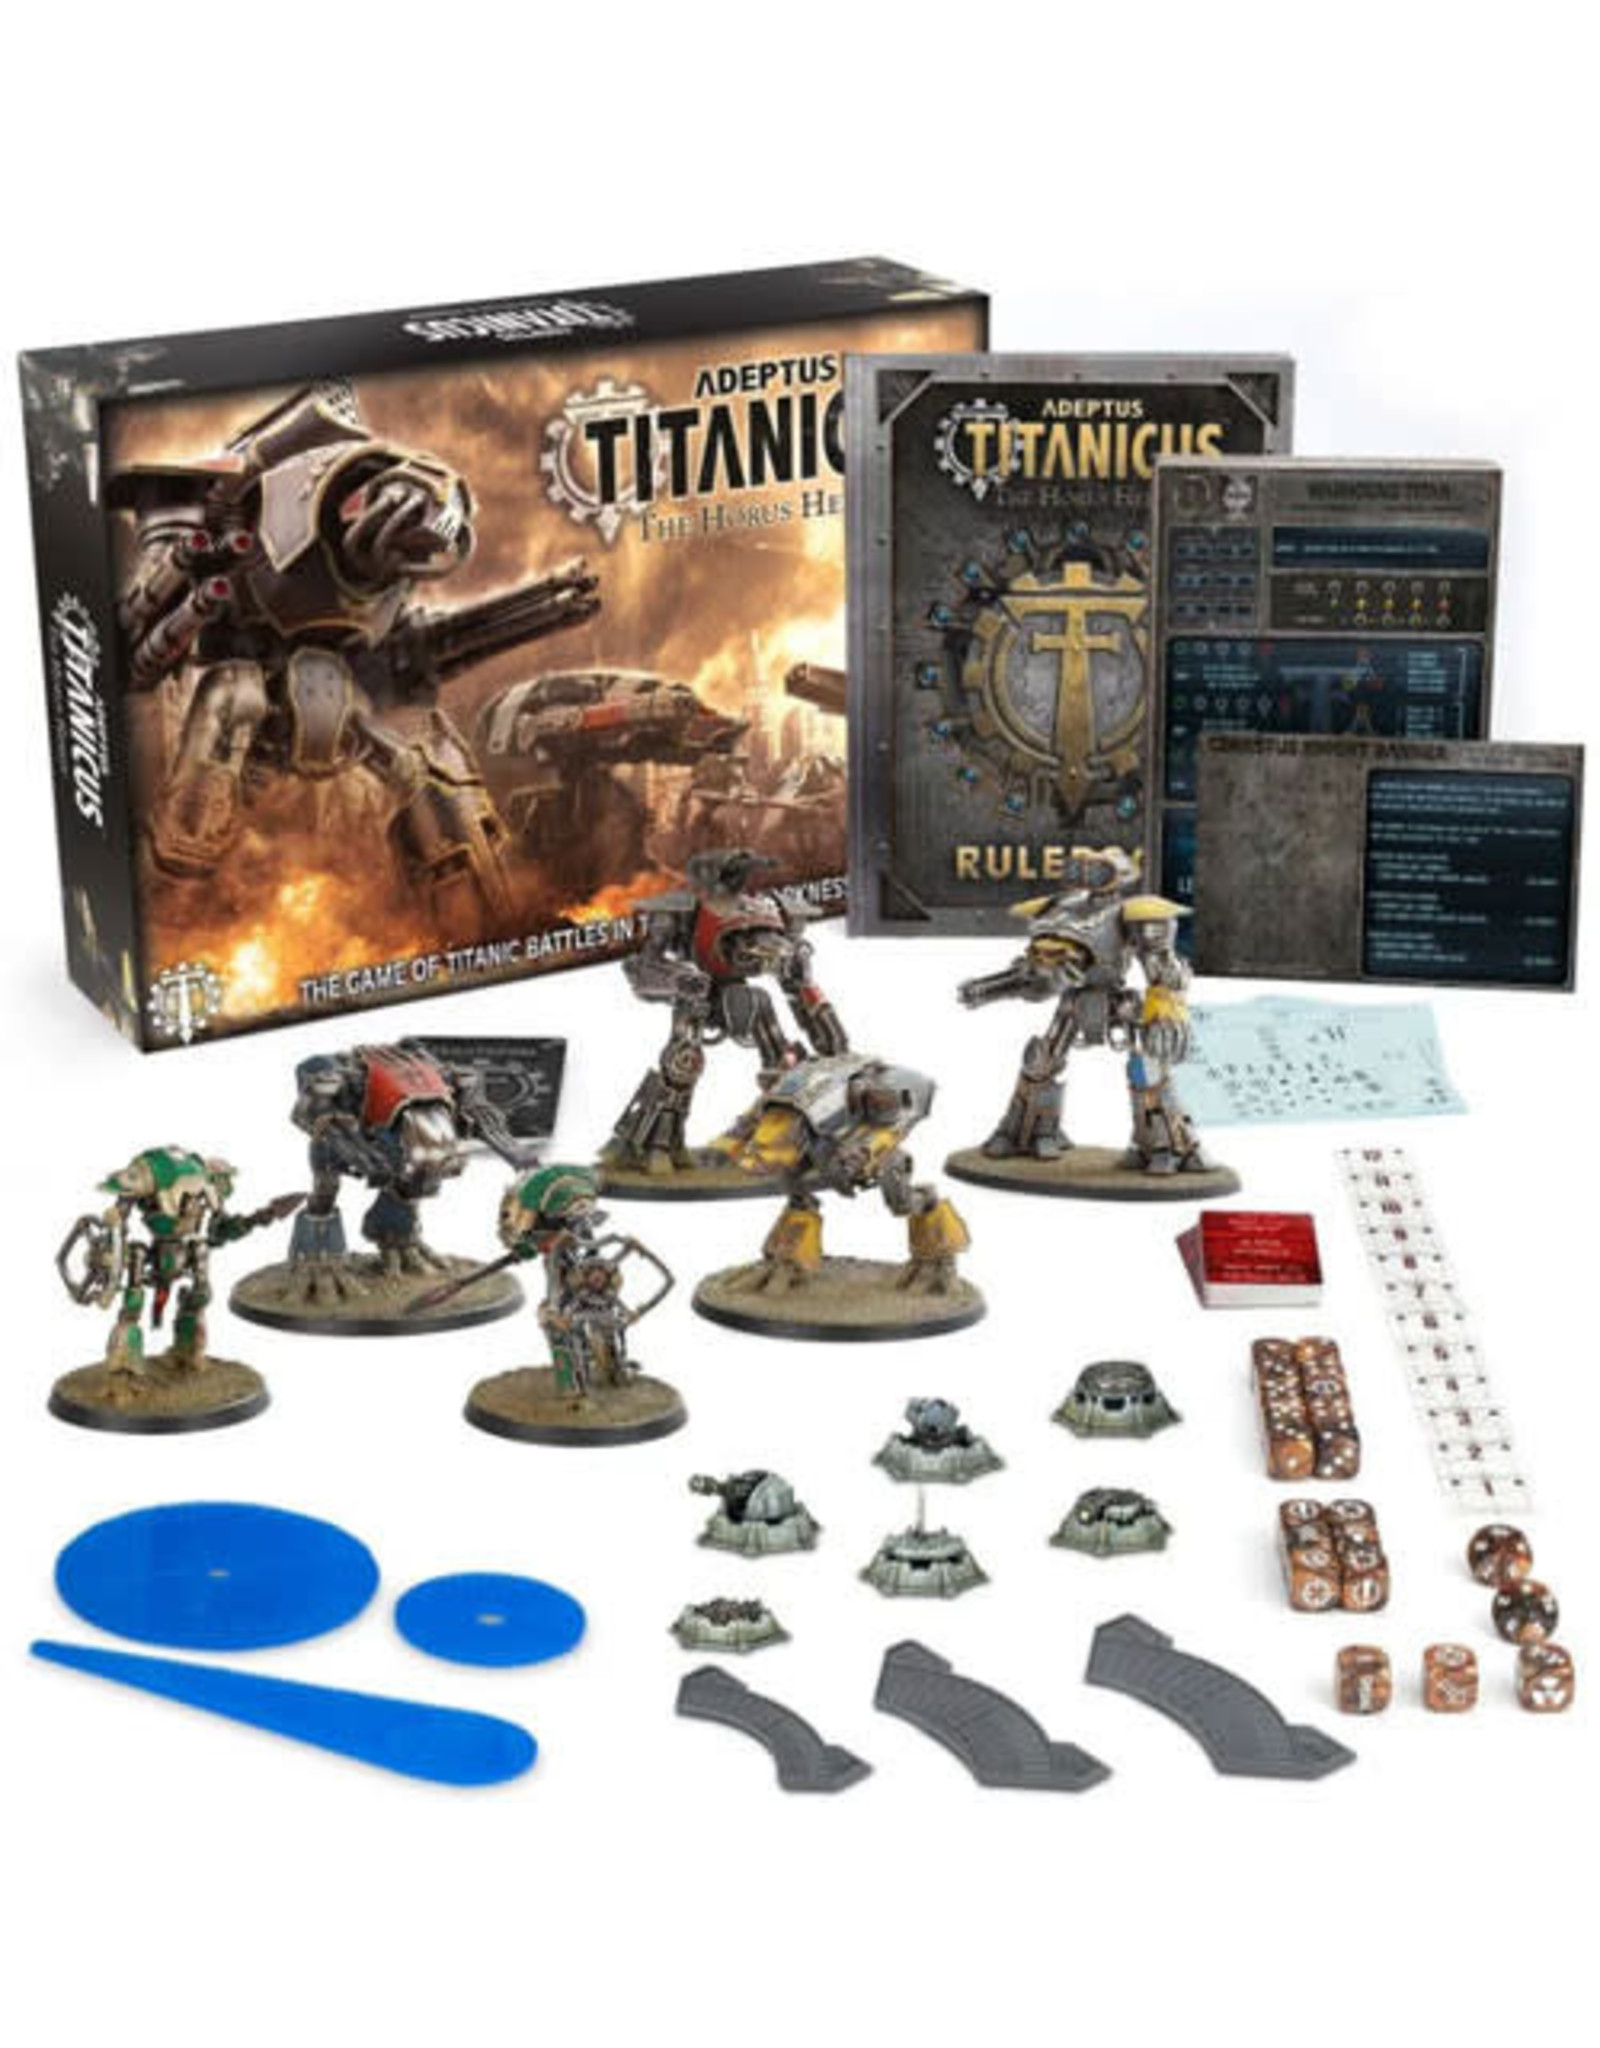 Games Workshop Adeptus Titanicus The Horus Heresy Starter Set